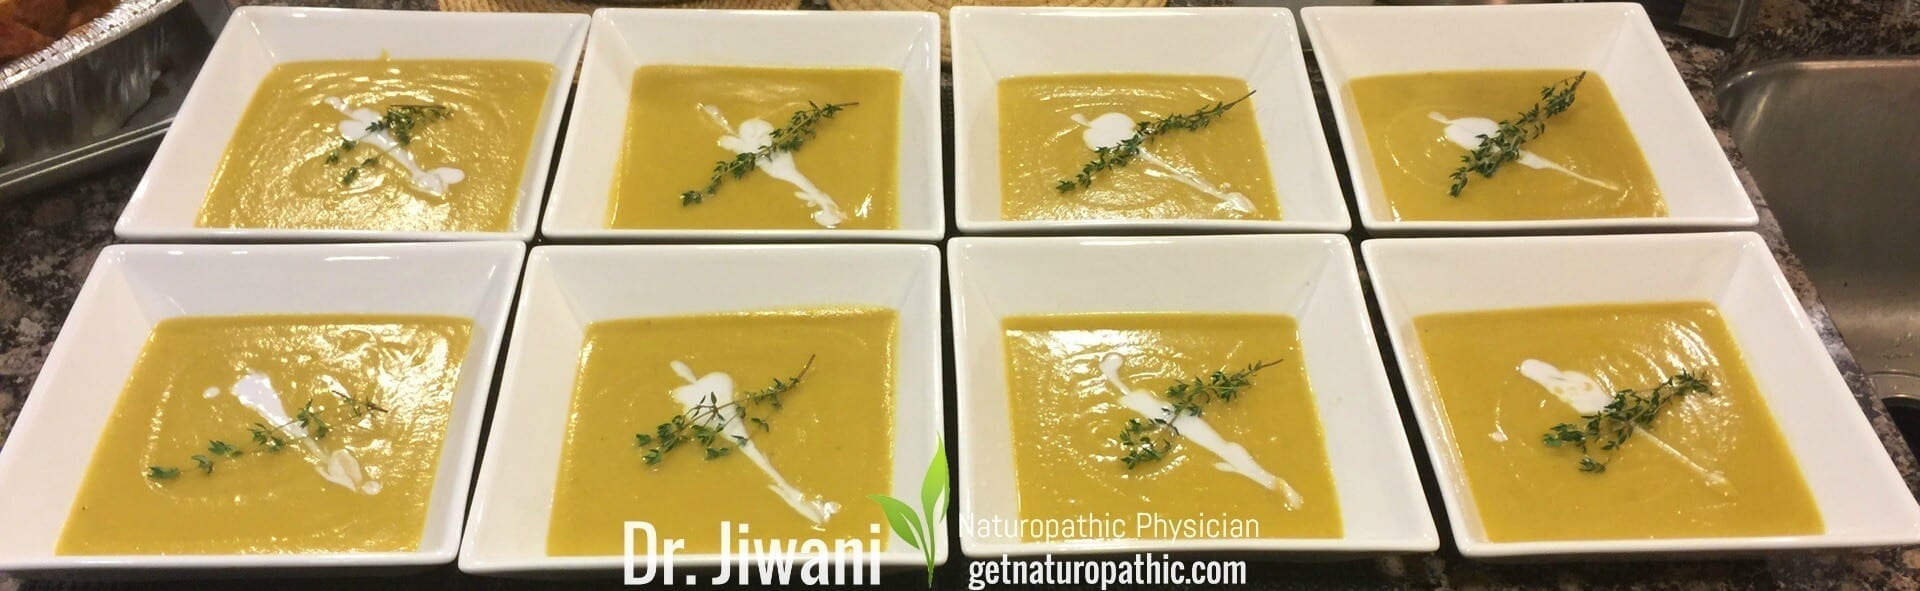 Dr. Jiwani's Butternut Squash Soup is Flavourful, Low Carb, Gluten-Free, Egg-Free, Dairy-Free, Soy-Free, Corn-Free, Ideal For Paleo, Keto, Vegan & Allergy-Free Diets | Dr. Jiwani's Naturopathic Nuggets